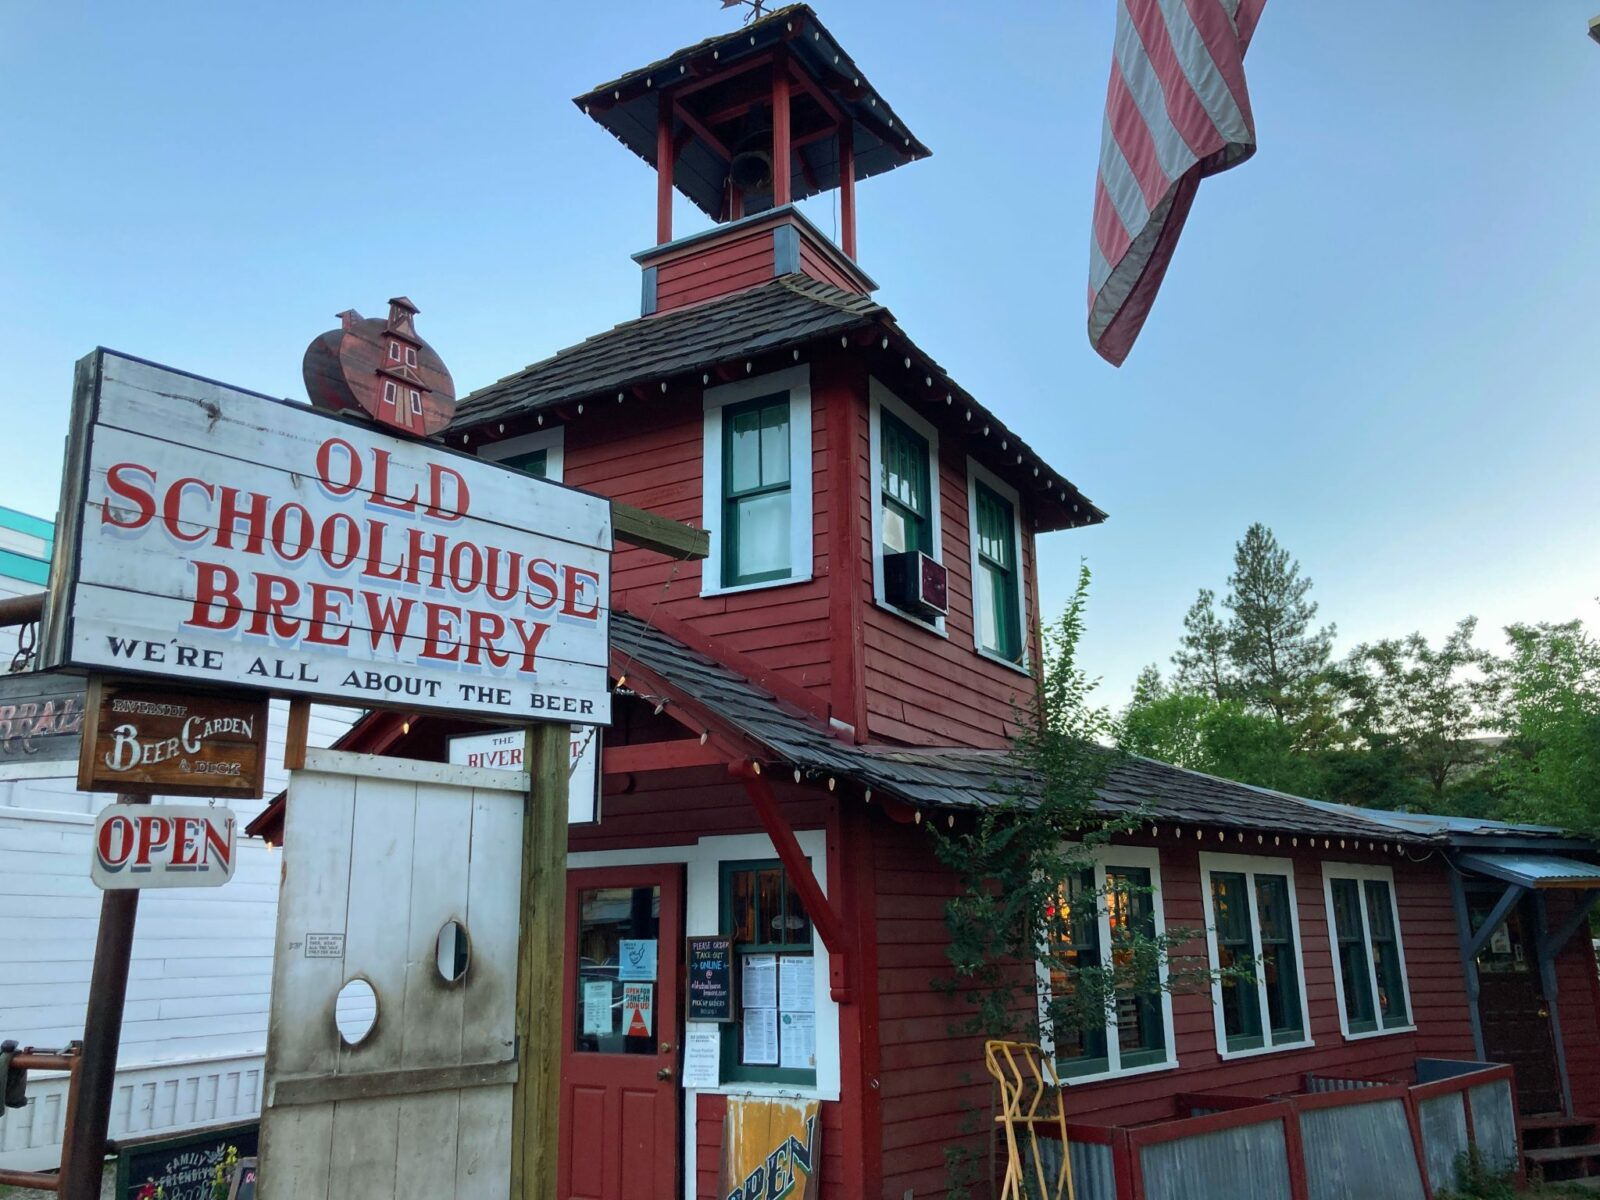 A historic tiny red schoolhouse with a sign in front that says Old Schoolhouse Brewery in Winthrop, Washington, near North Cascades National Park